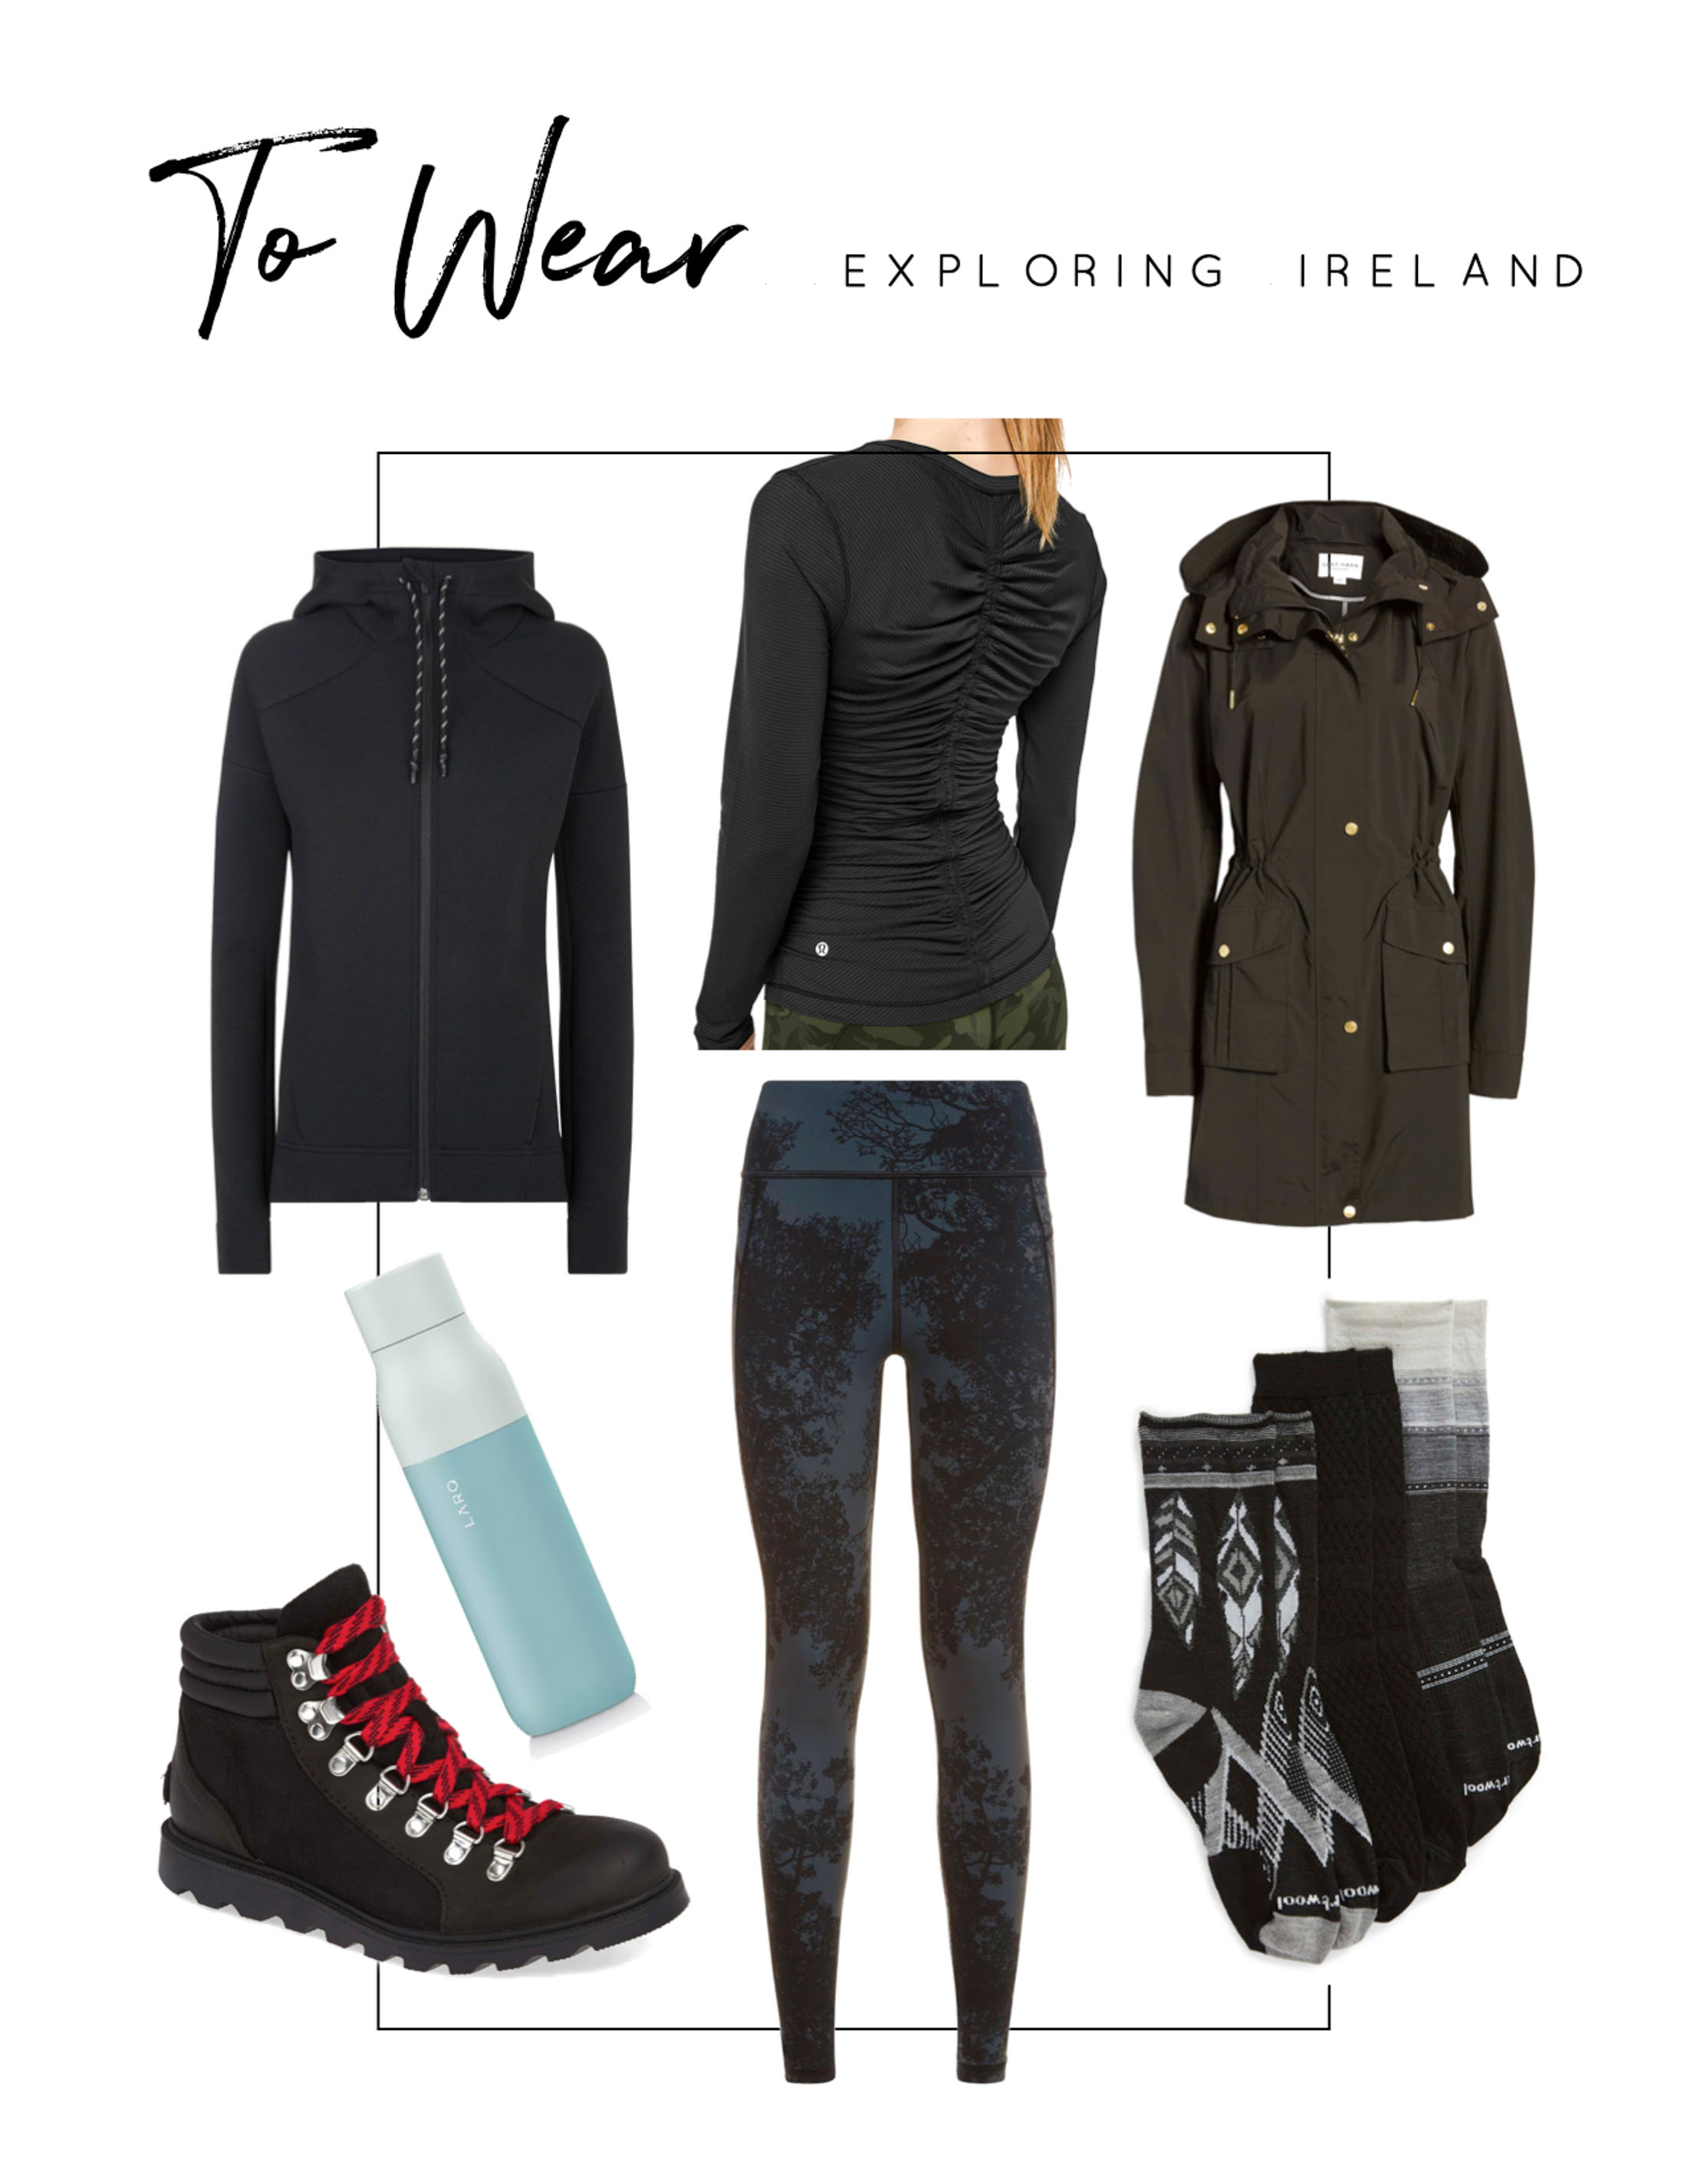 Visiting Ireland in the Spring? We've some cute outfits, perfect for day-to-night, exploring the countryside & traveling on the plane. Let's go!